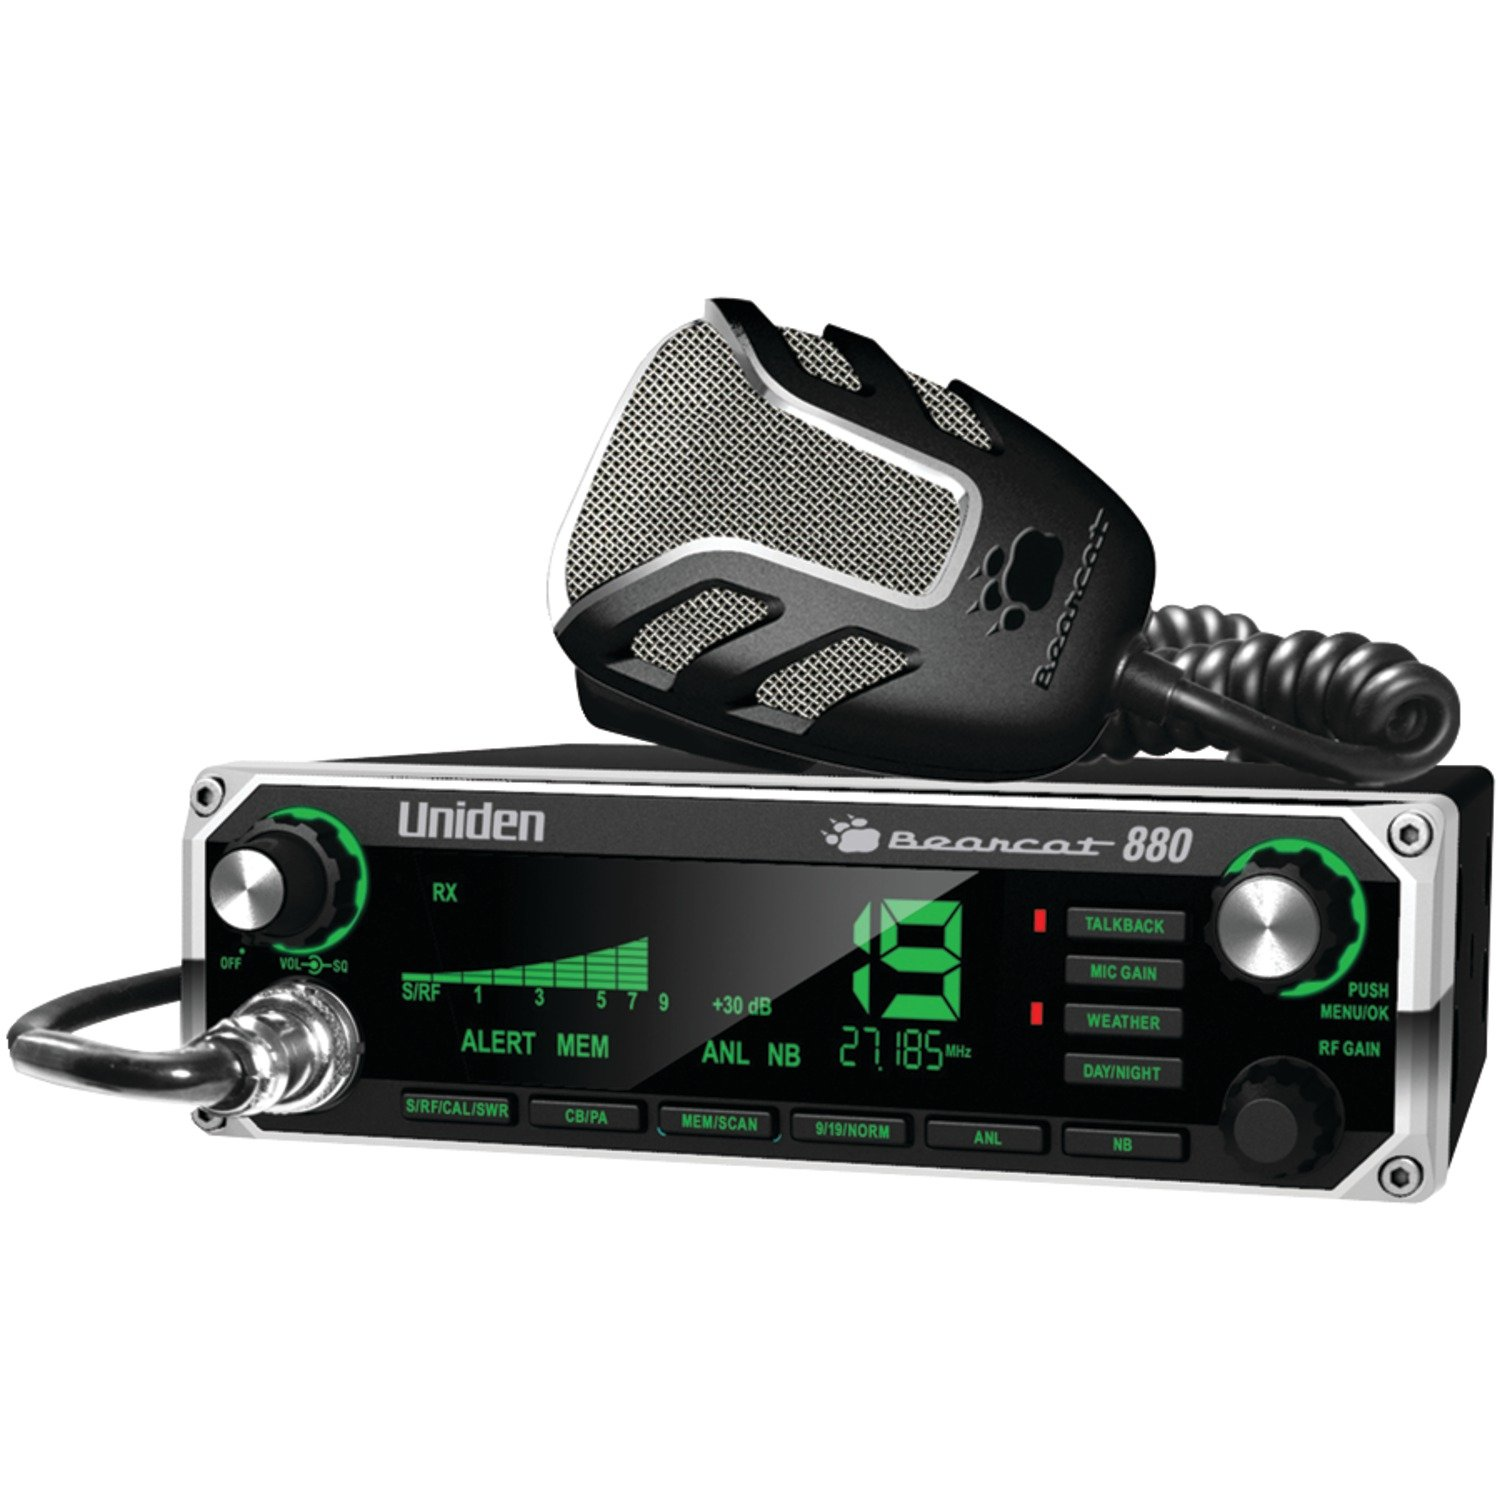 Uniden BEARCAT 880 CB Radio with 40 Channels and Large Easy-to-Read 7-Color LCD Display with Backlighting, Backlit Control Knobs/Buttons, NOAA Weather Alert, PA/CB Switch, and Wireless Mic Compatible, by Uniden